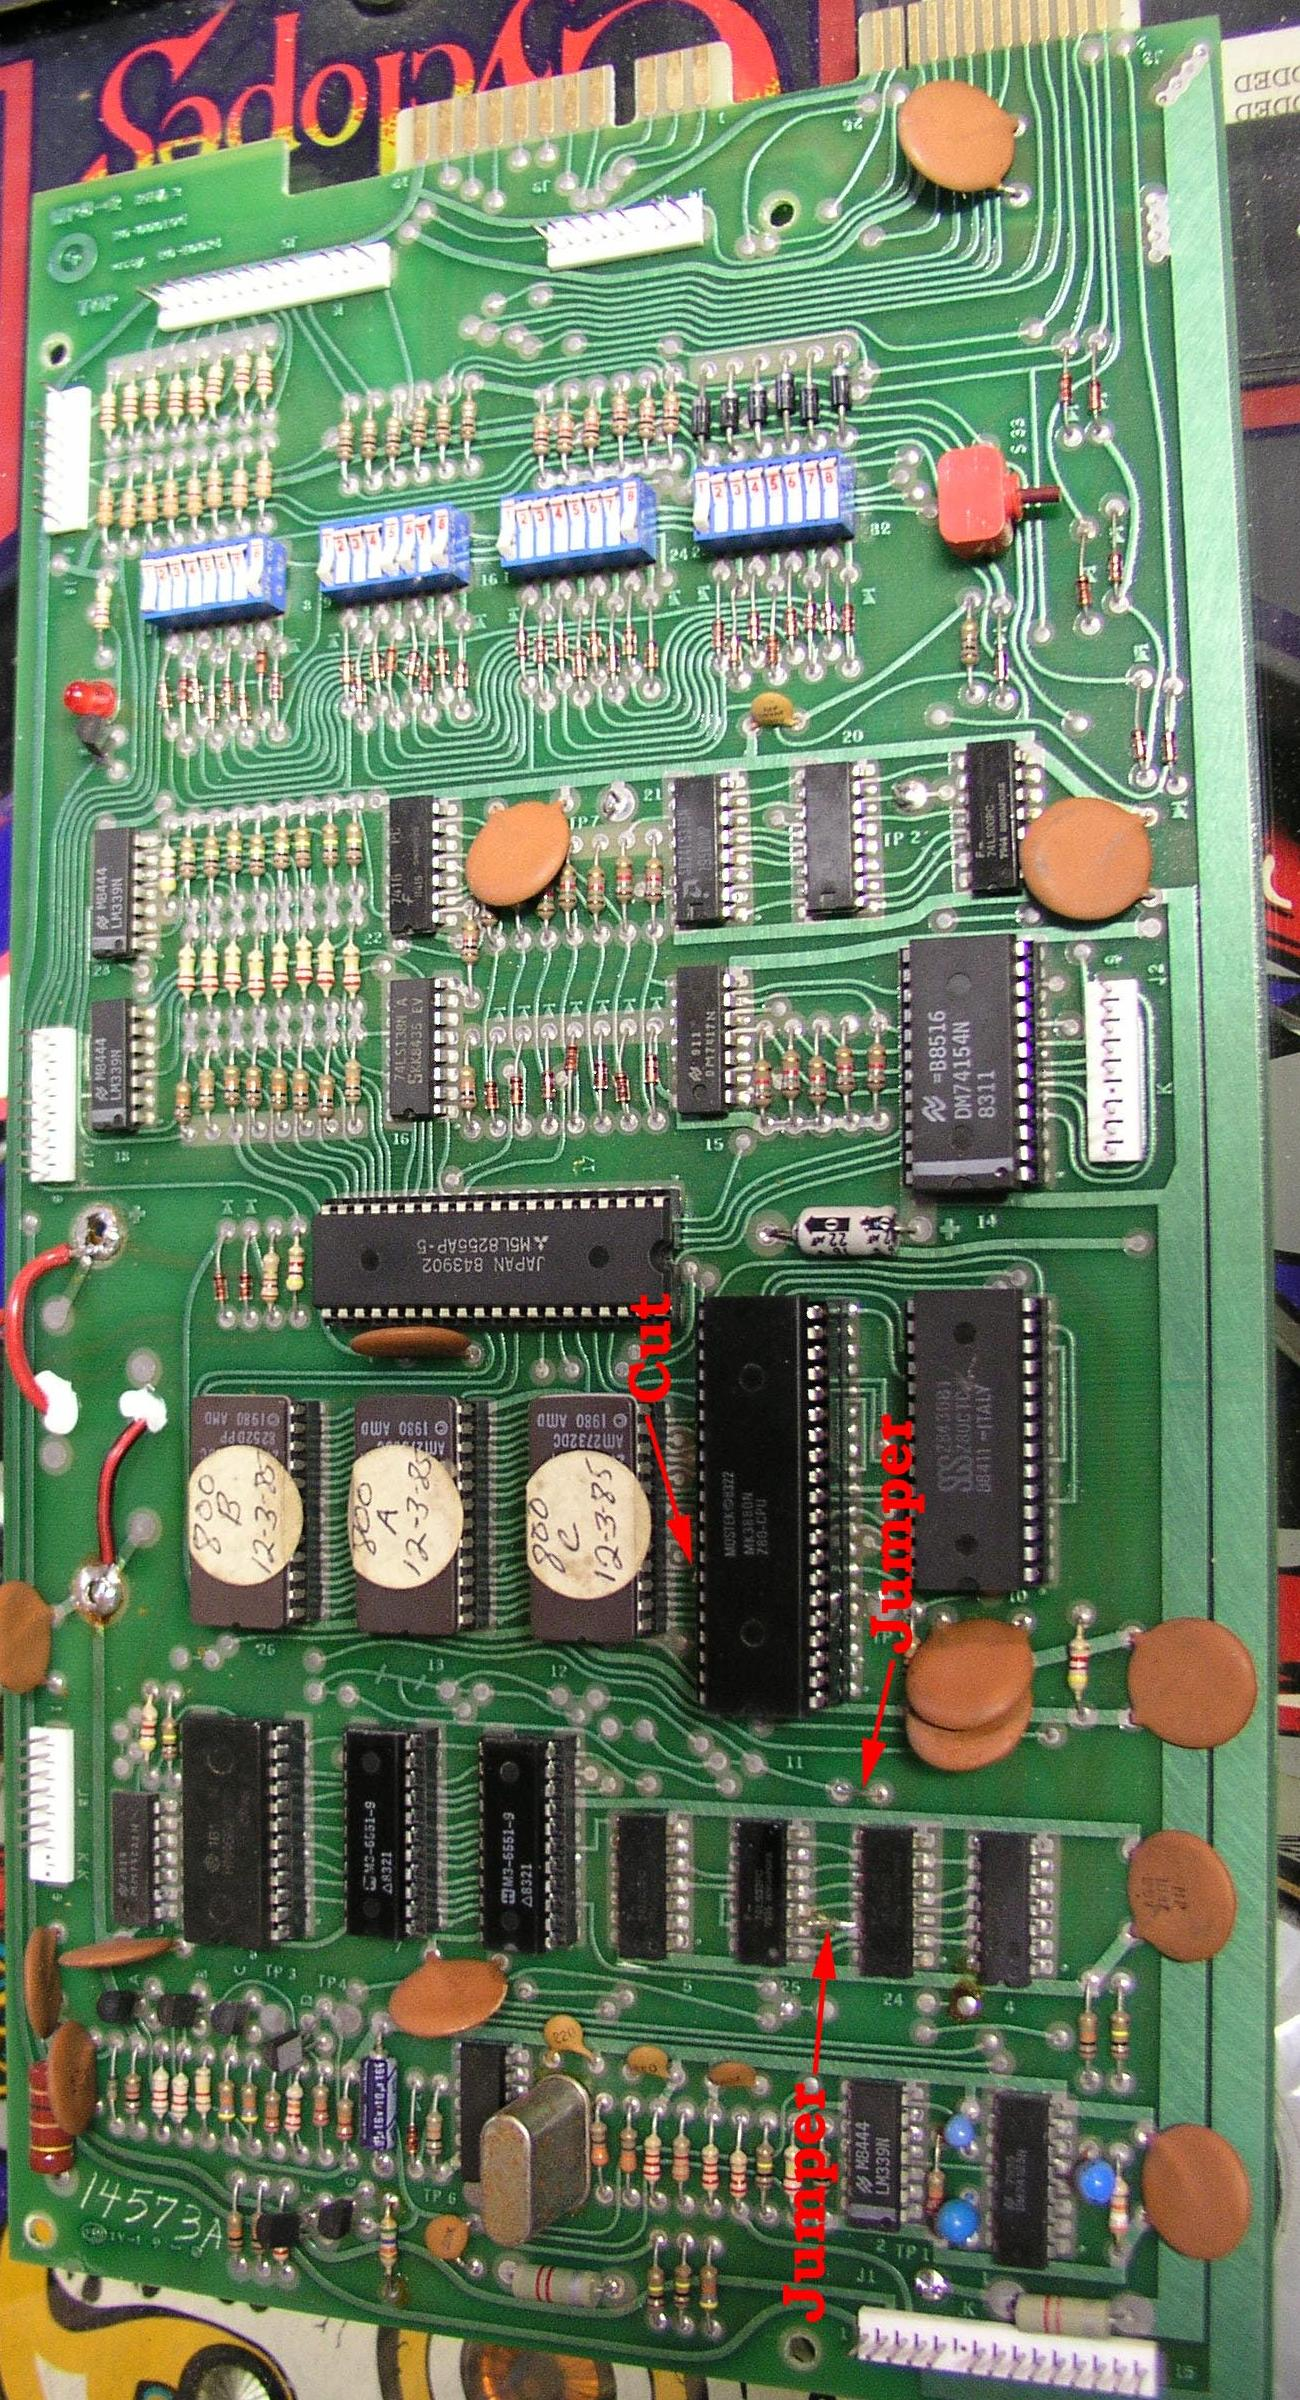 Pinball Game Plan Gameplan Repair 1978 1985 Old Dirty Circuit Board With Transistors And Microchips For Use As A Component Side Modifying Mpu 2 2732 Eproms Pic By Tom